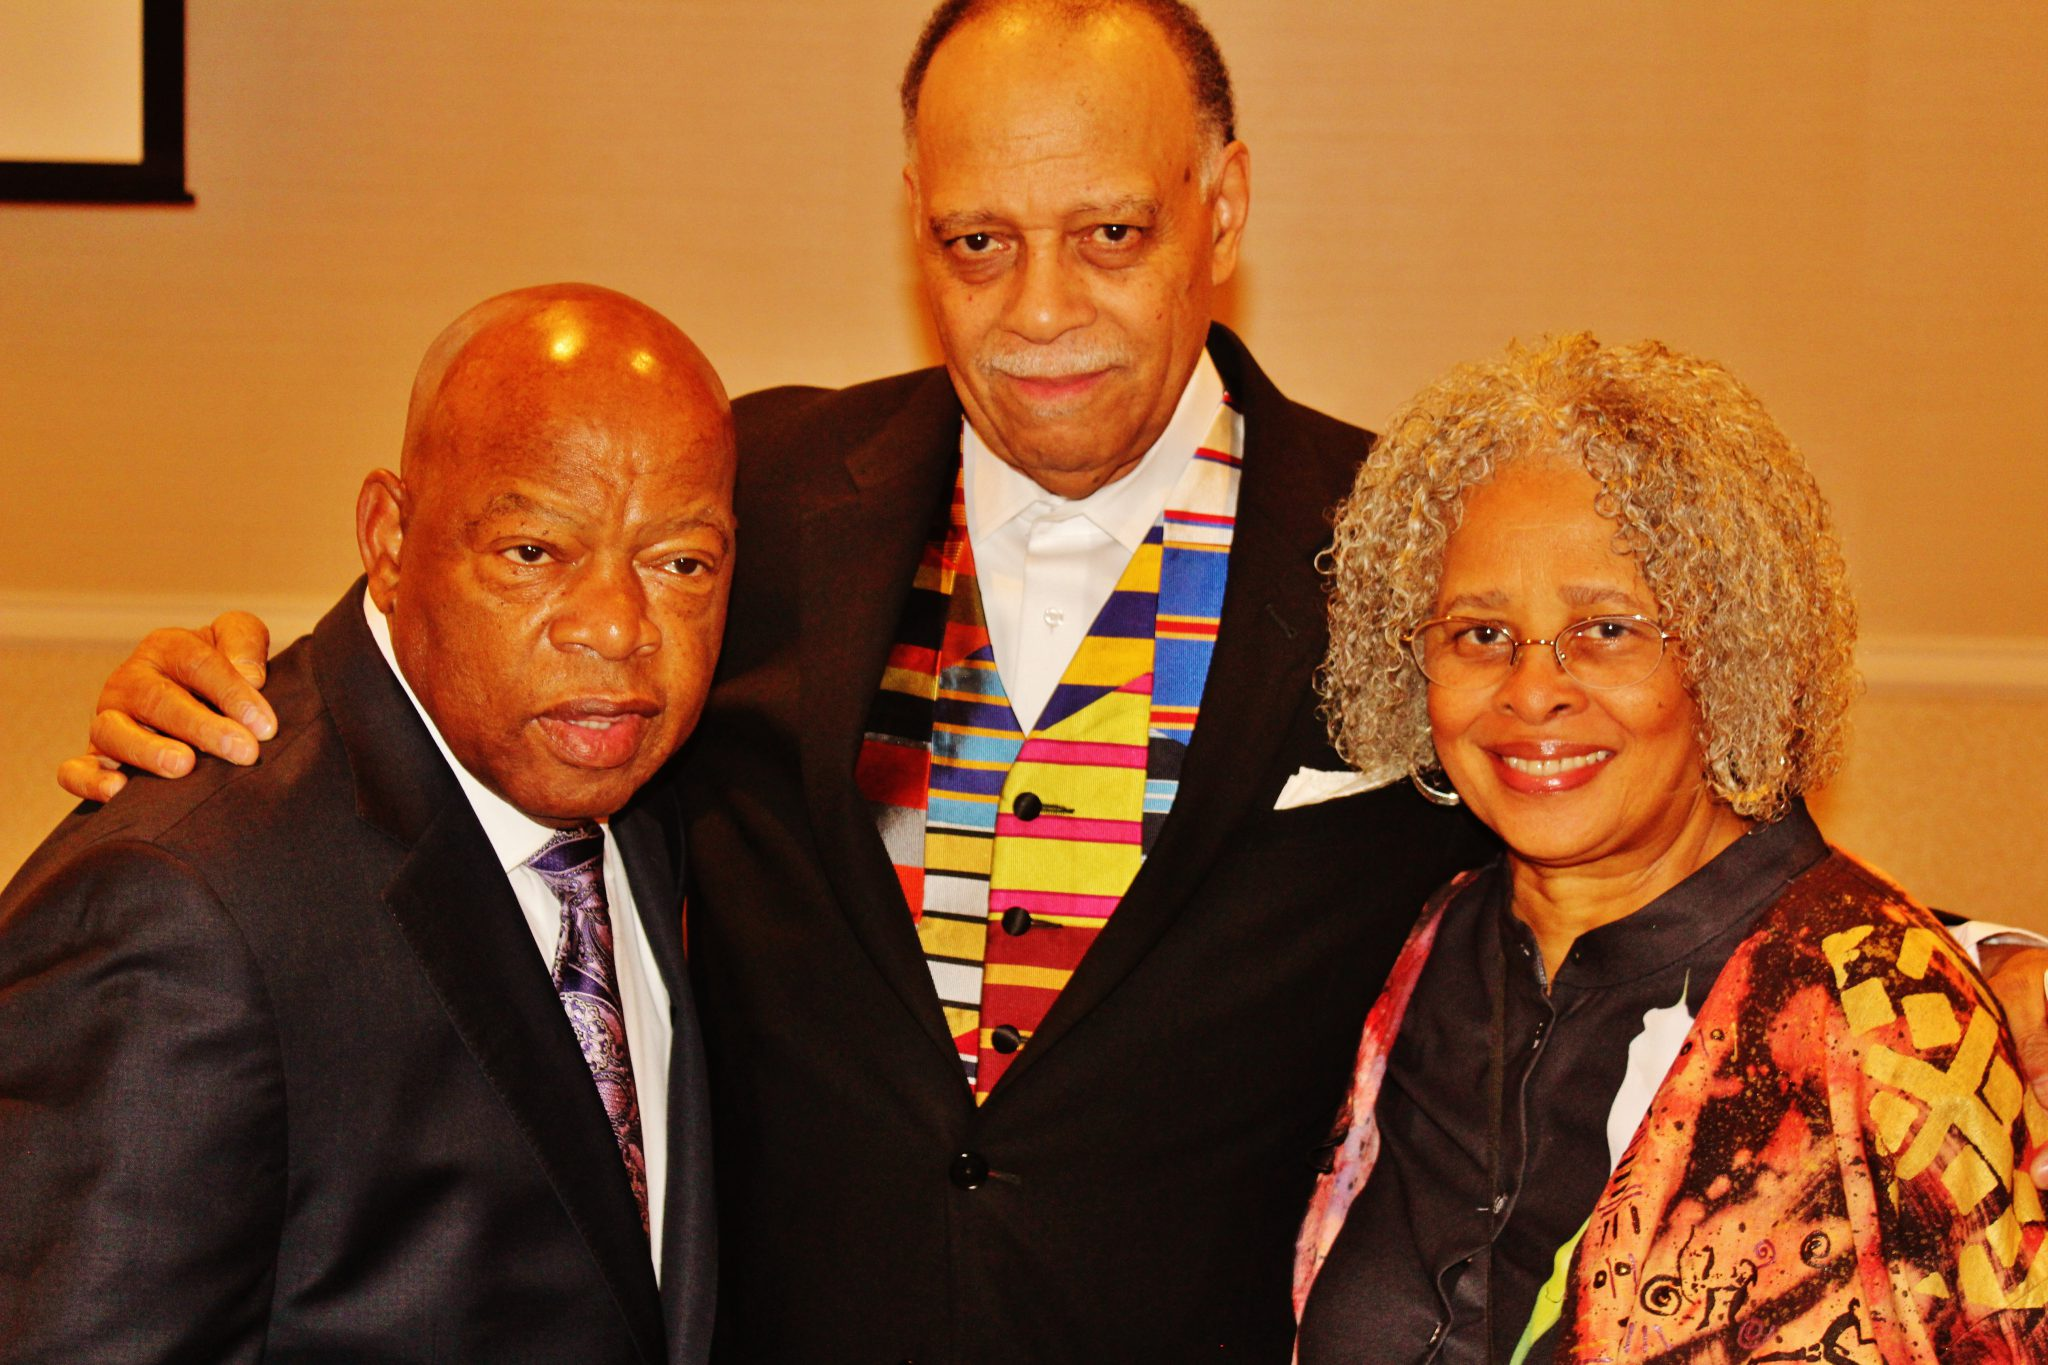 HURSTON WRIGHT LEGACY AWARDS